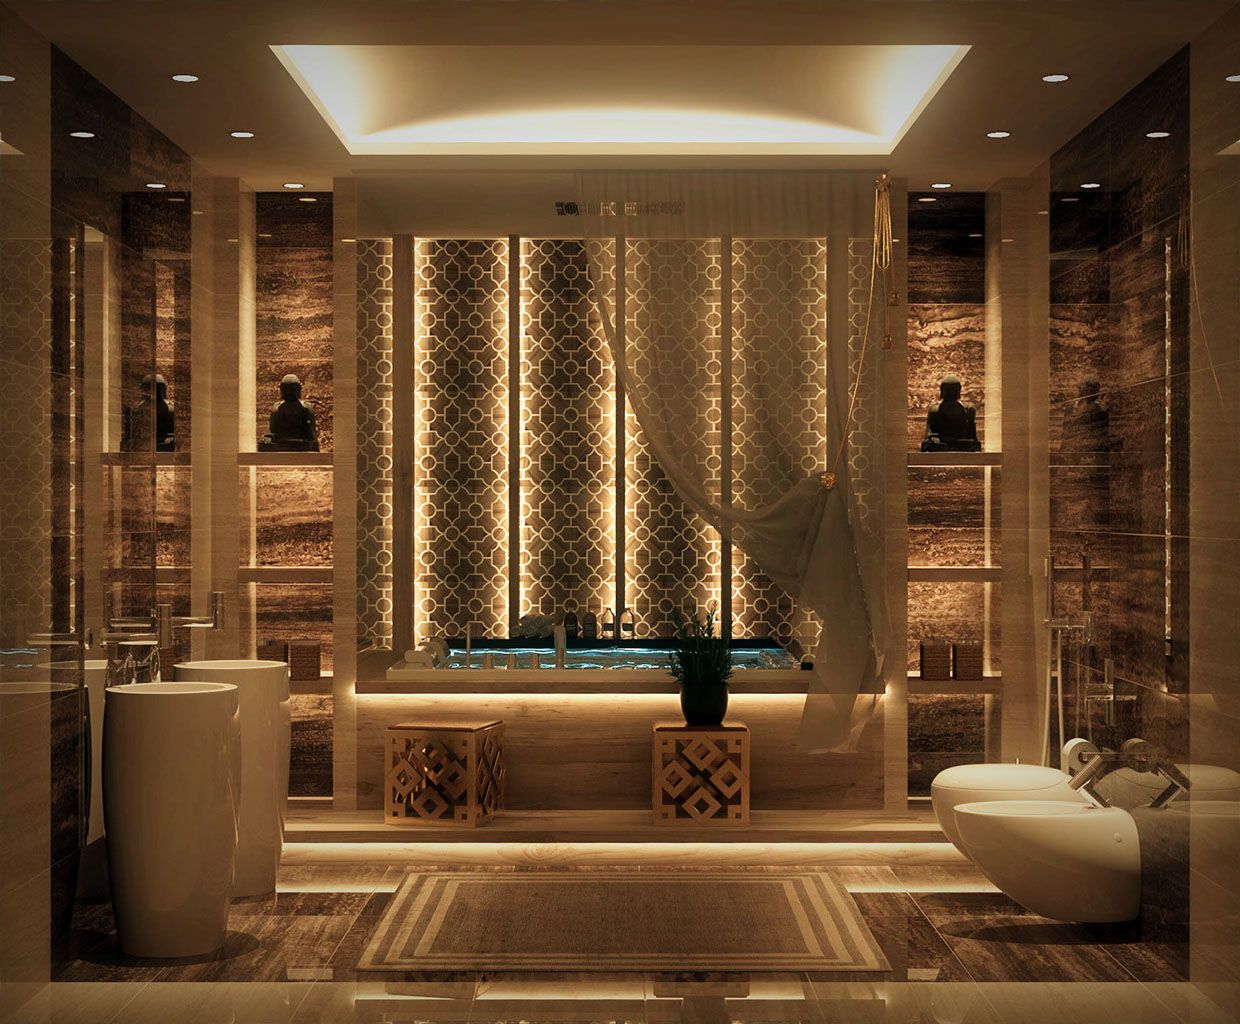 Pictures Of Luxury Bathrooms Gorgeous Luxurious Bathrooms With Stunning Design Details Review